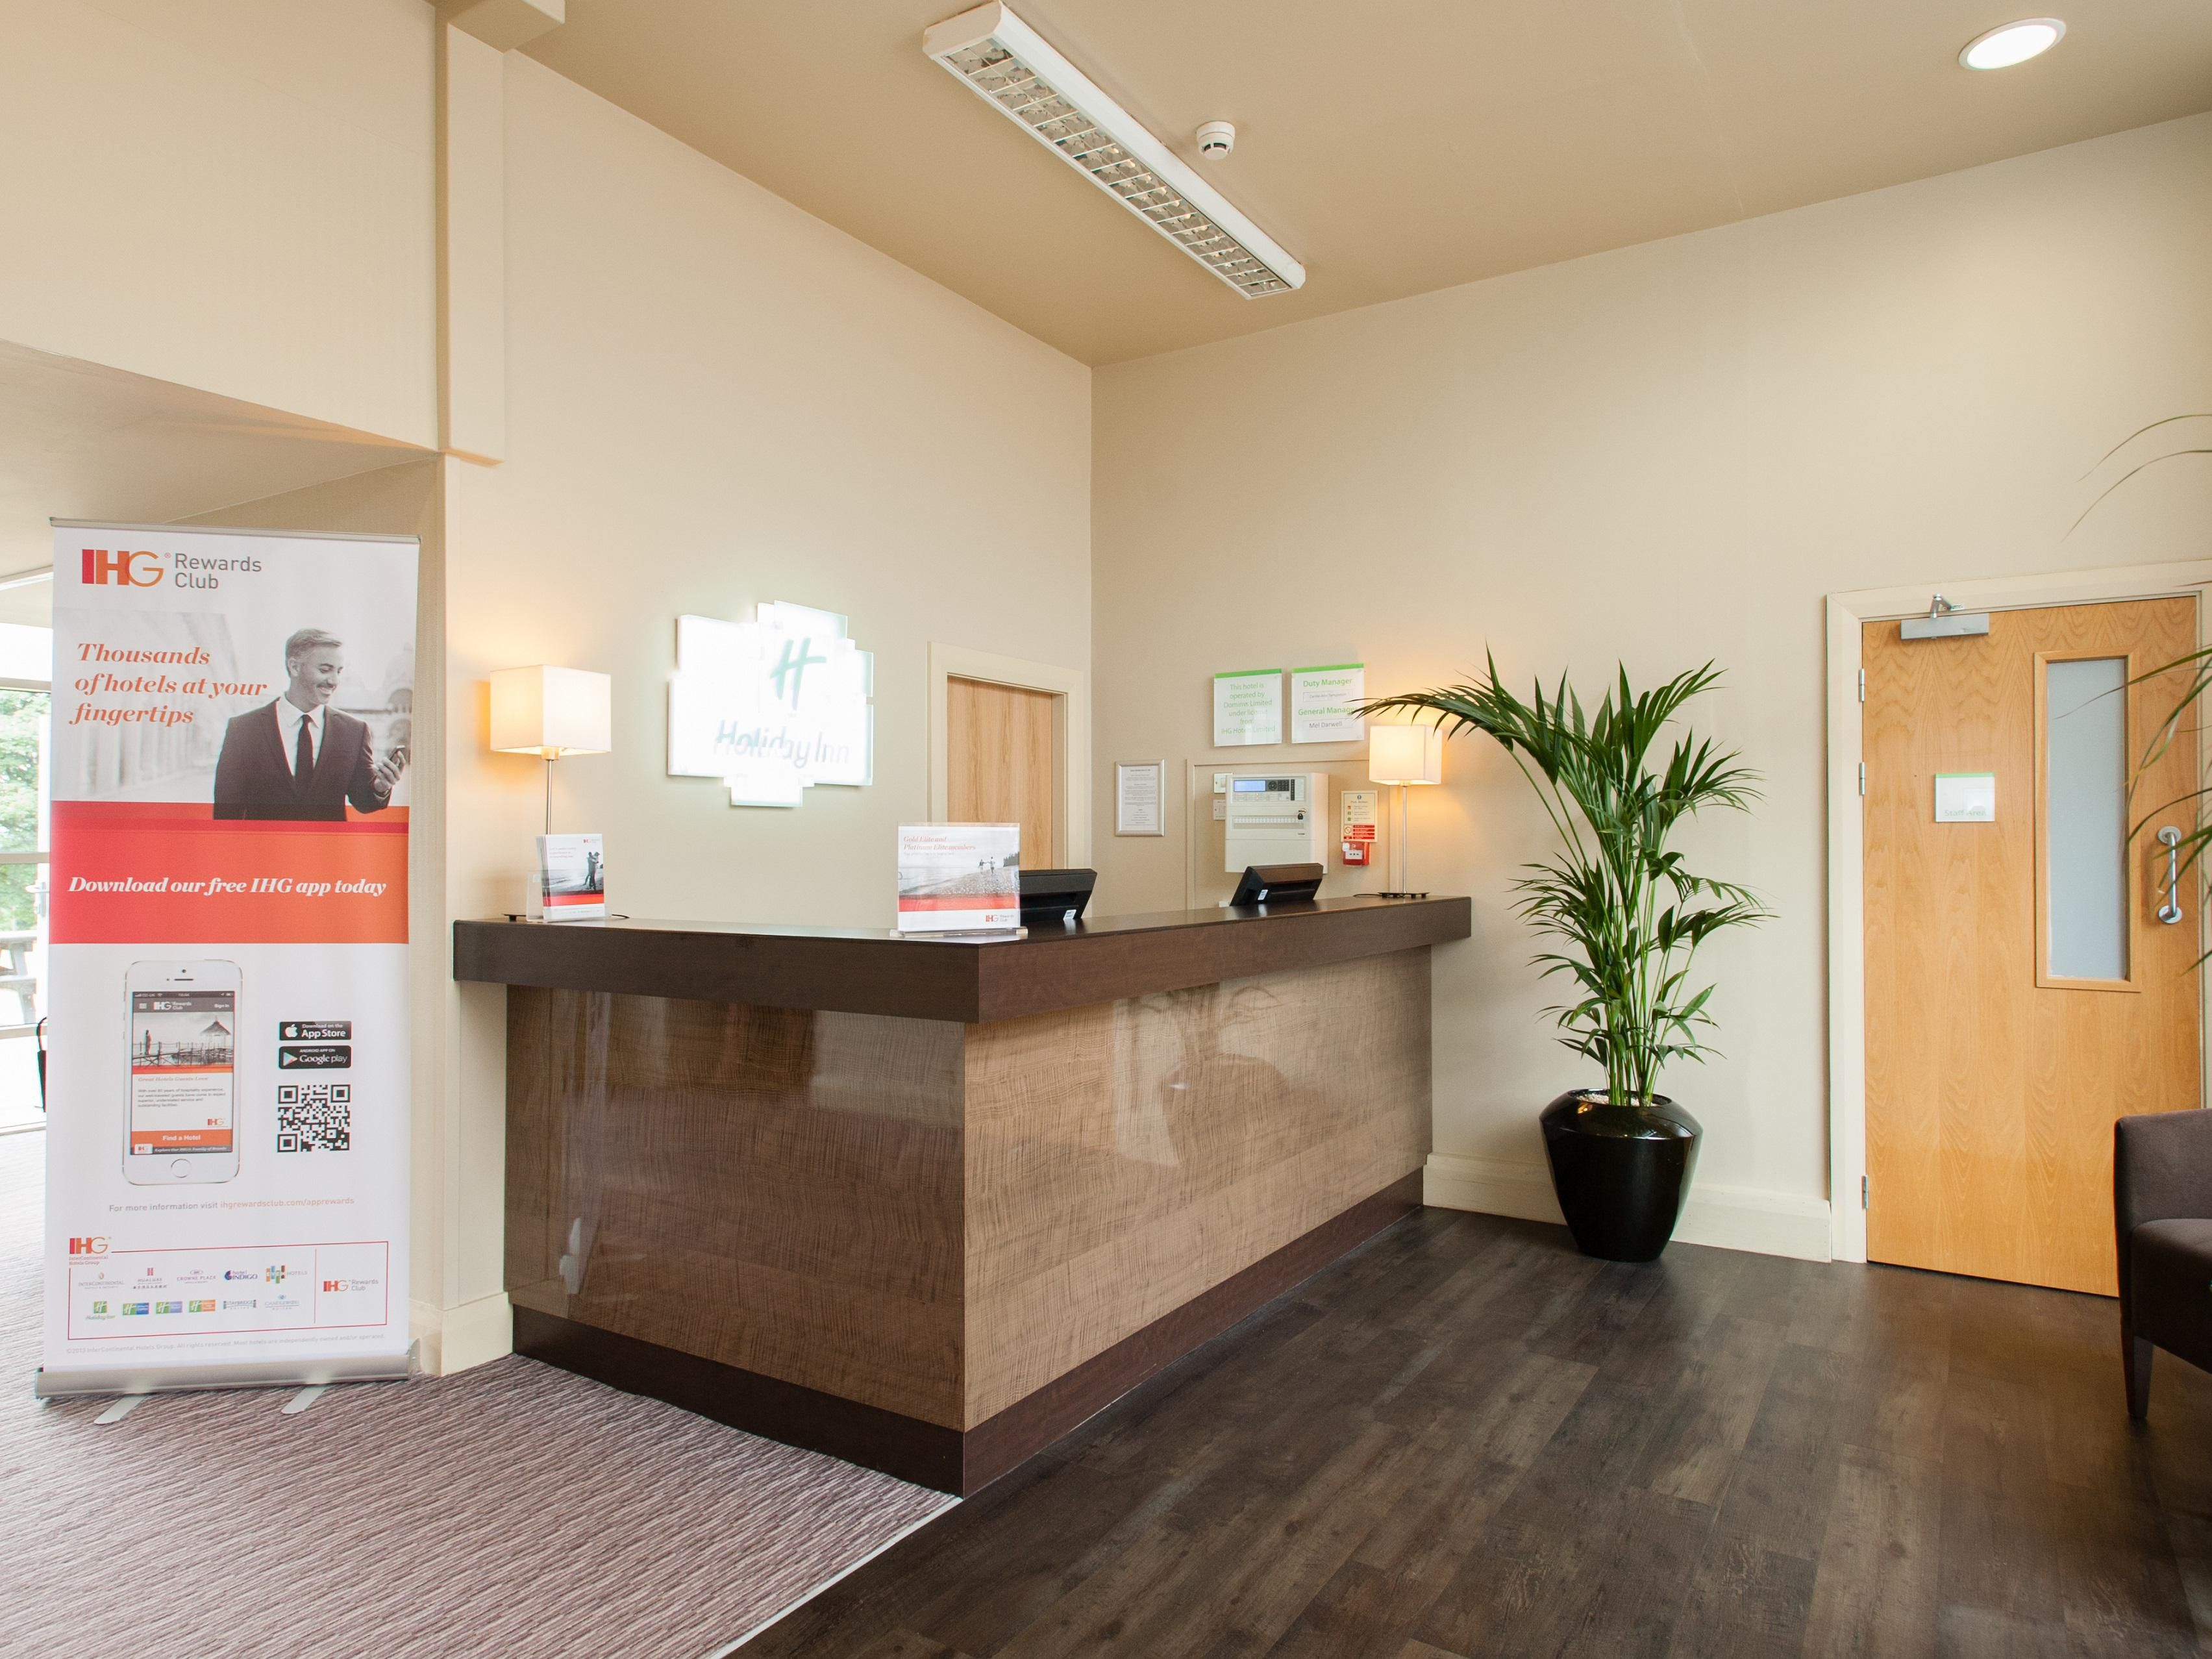 Holiday Inn Dumfries Concierge